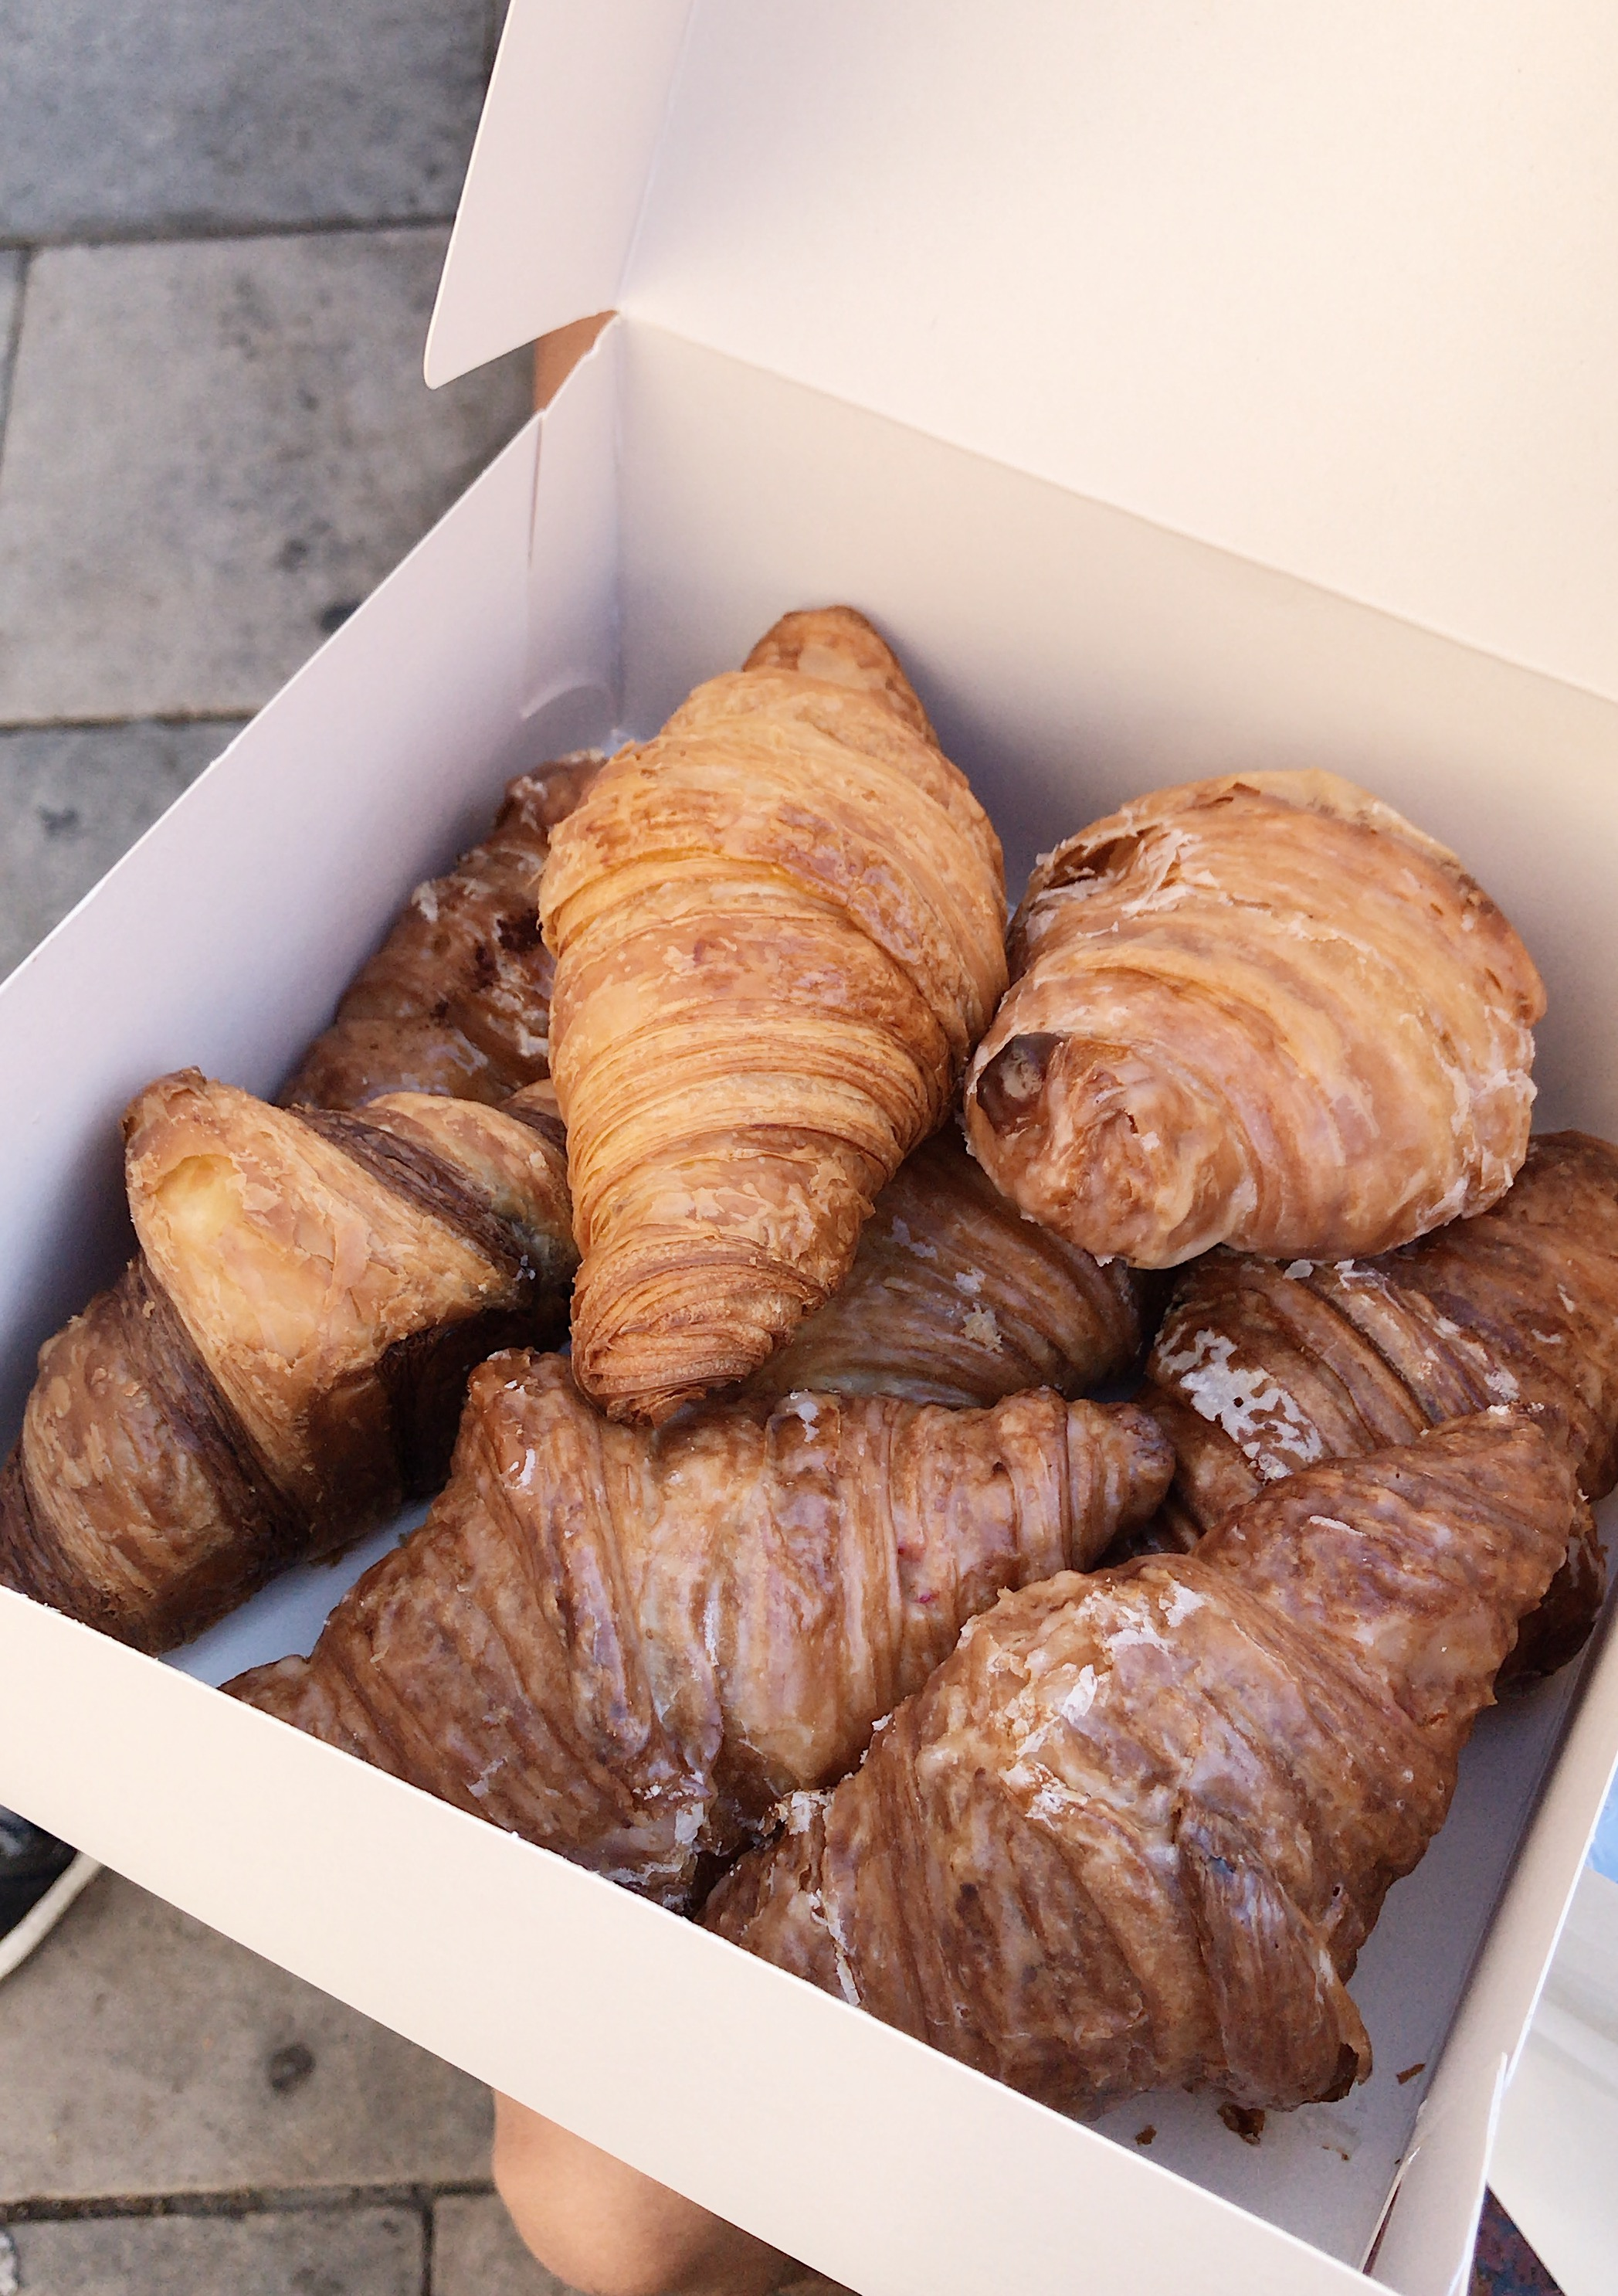 Barcelona Food Recap - Do you travel to eat? If yes, check out all the places I ate during my trip. (I ate more than croissants but these croissants were definitely one of my favorite things.) Buen provecho!